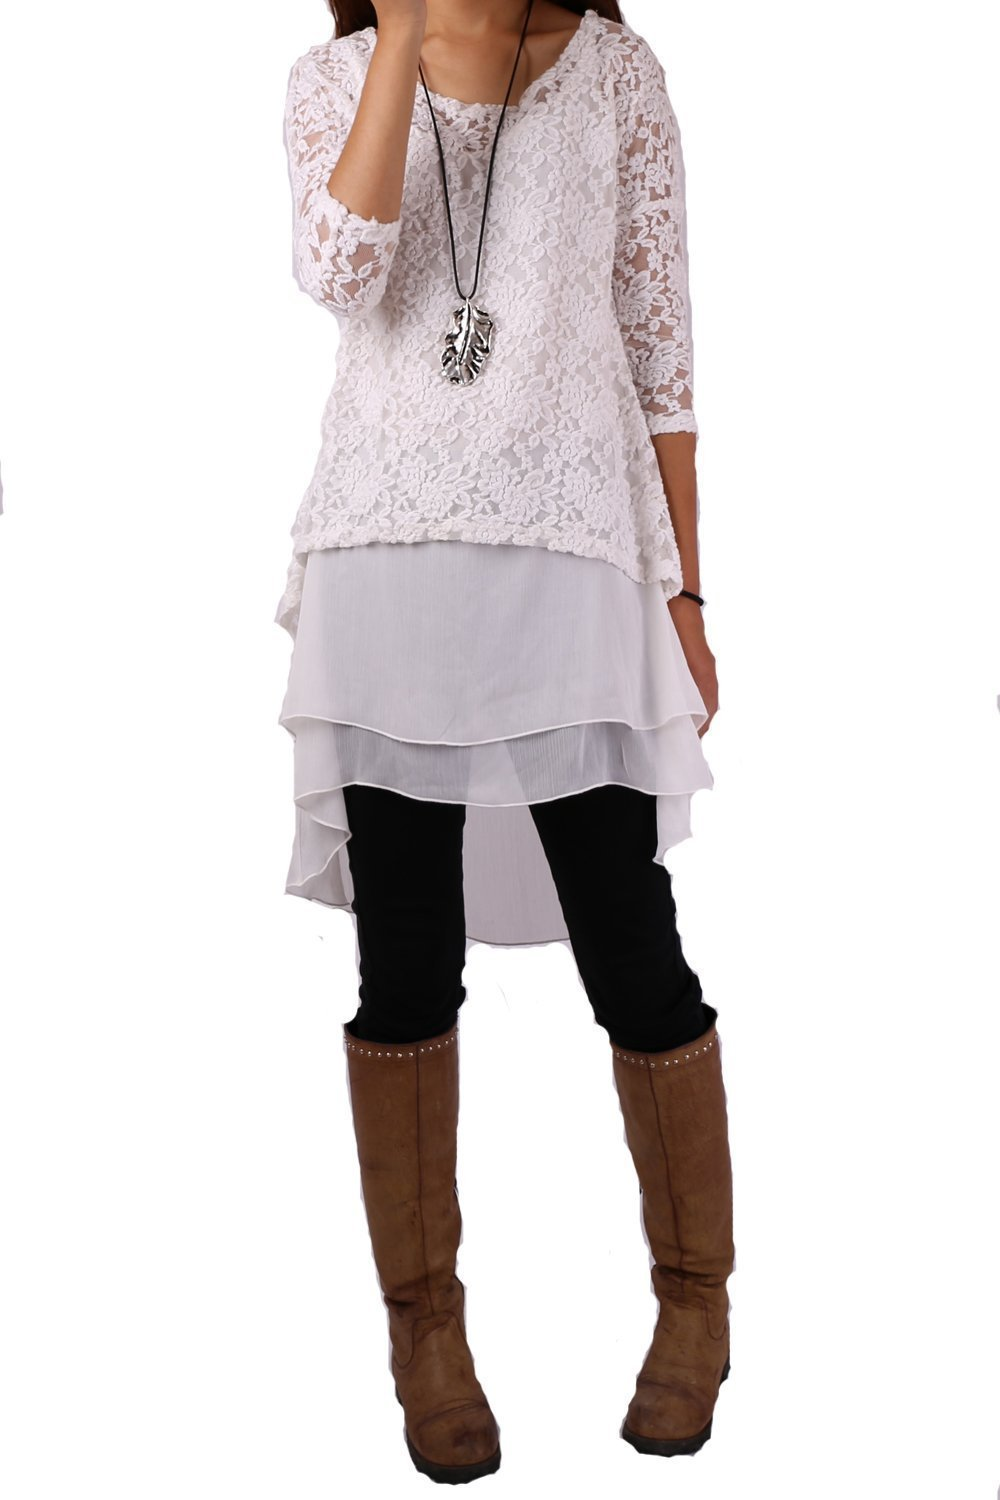 Women's Lace Chiffon Zen Layered Tunic Dress Set White